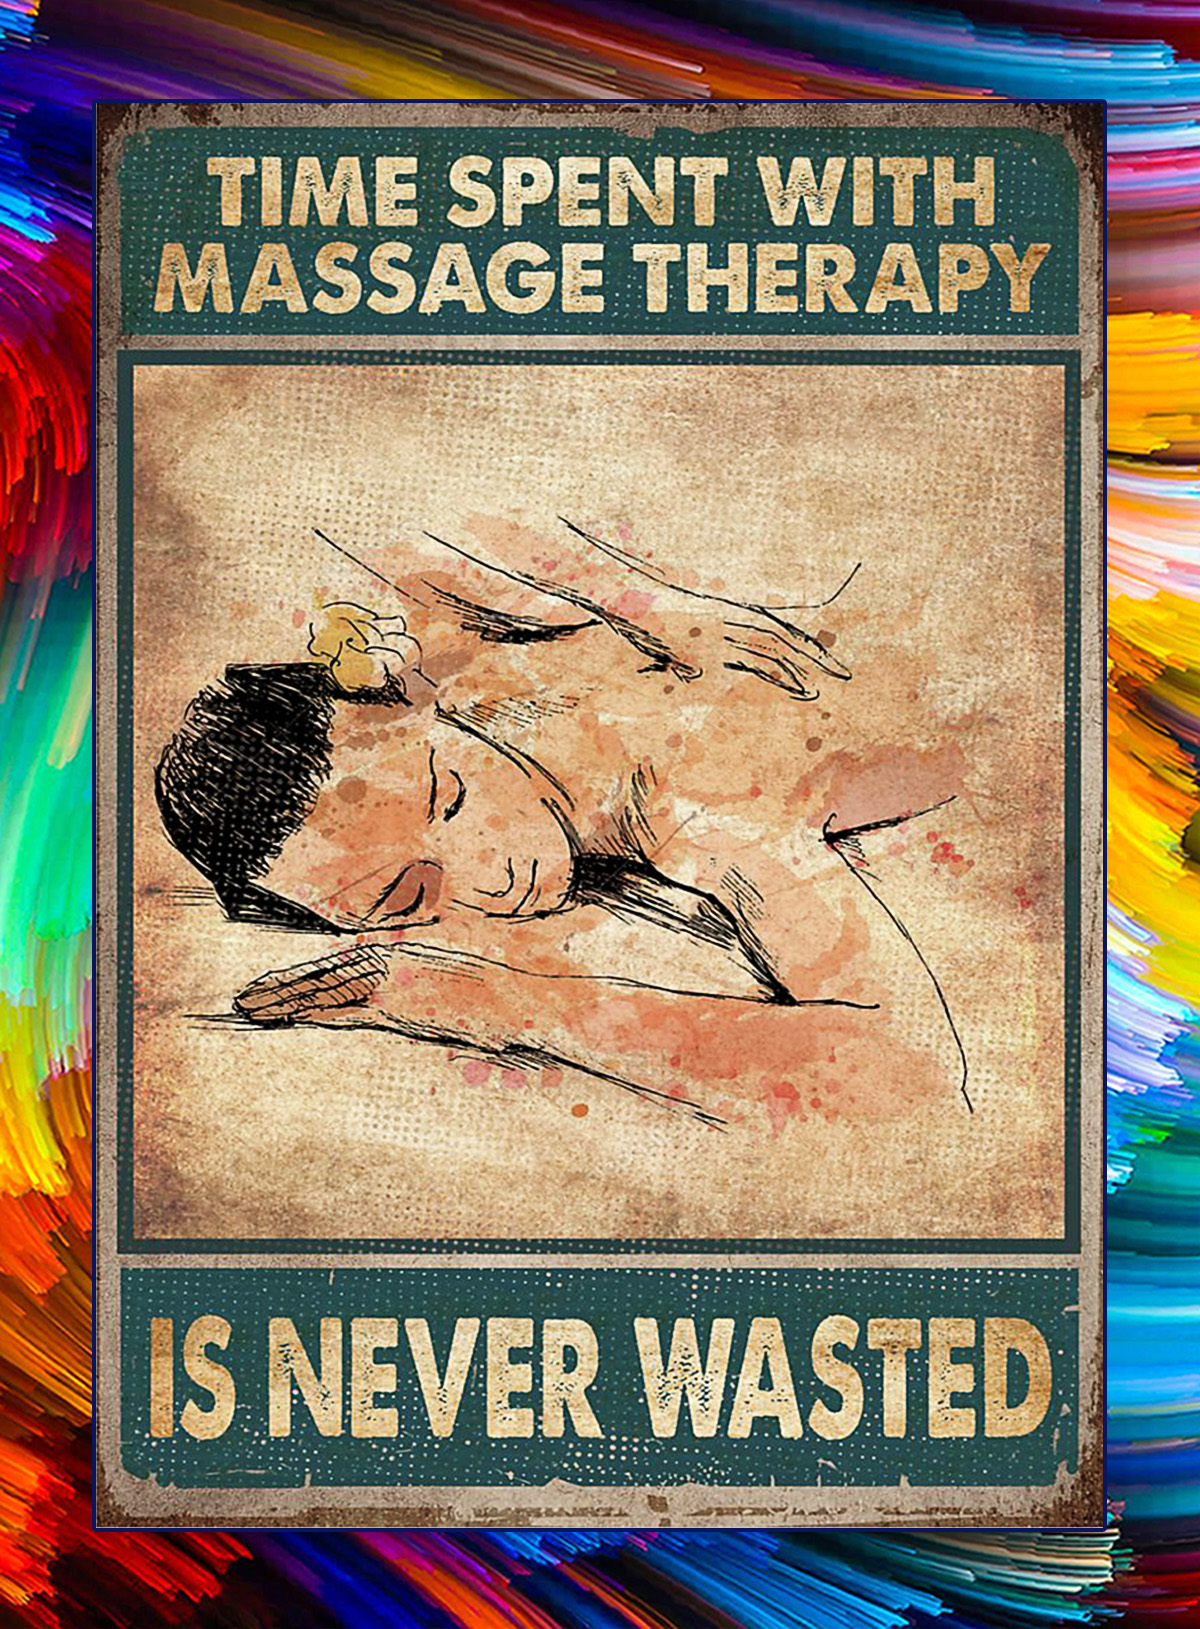 Time spent with massage therapy is never wasted poster - A4